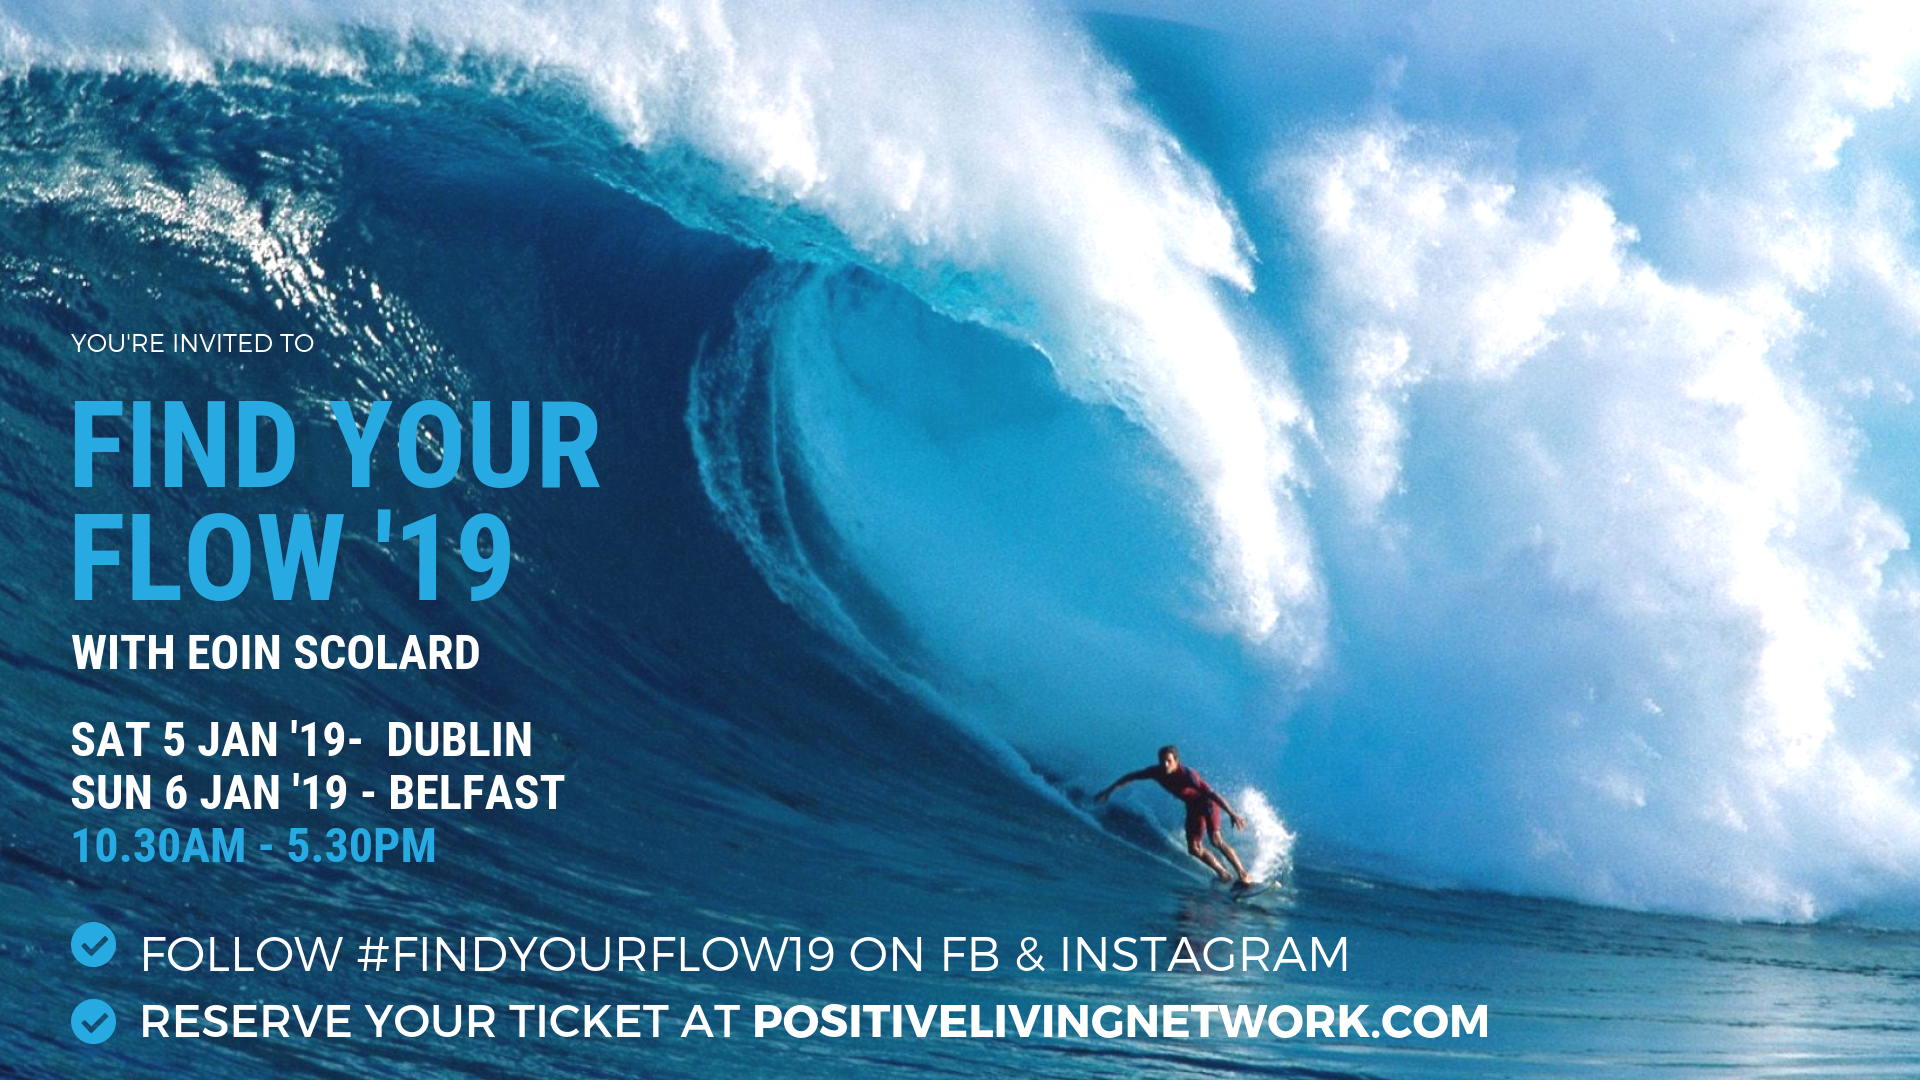 FIND YOUR FLOW '19 : DUBLIN